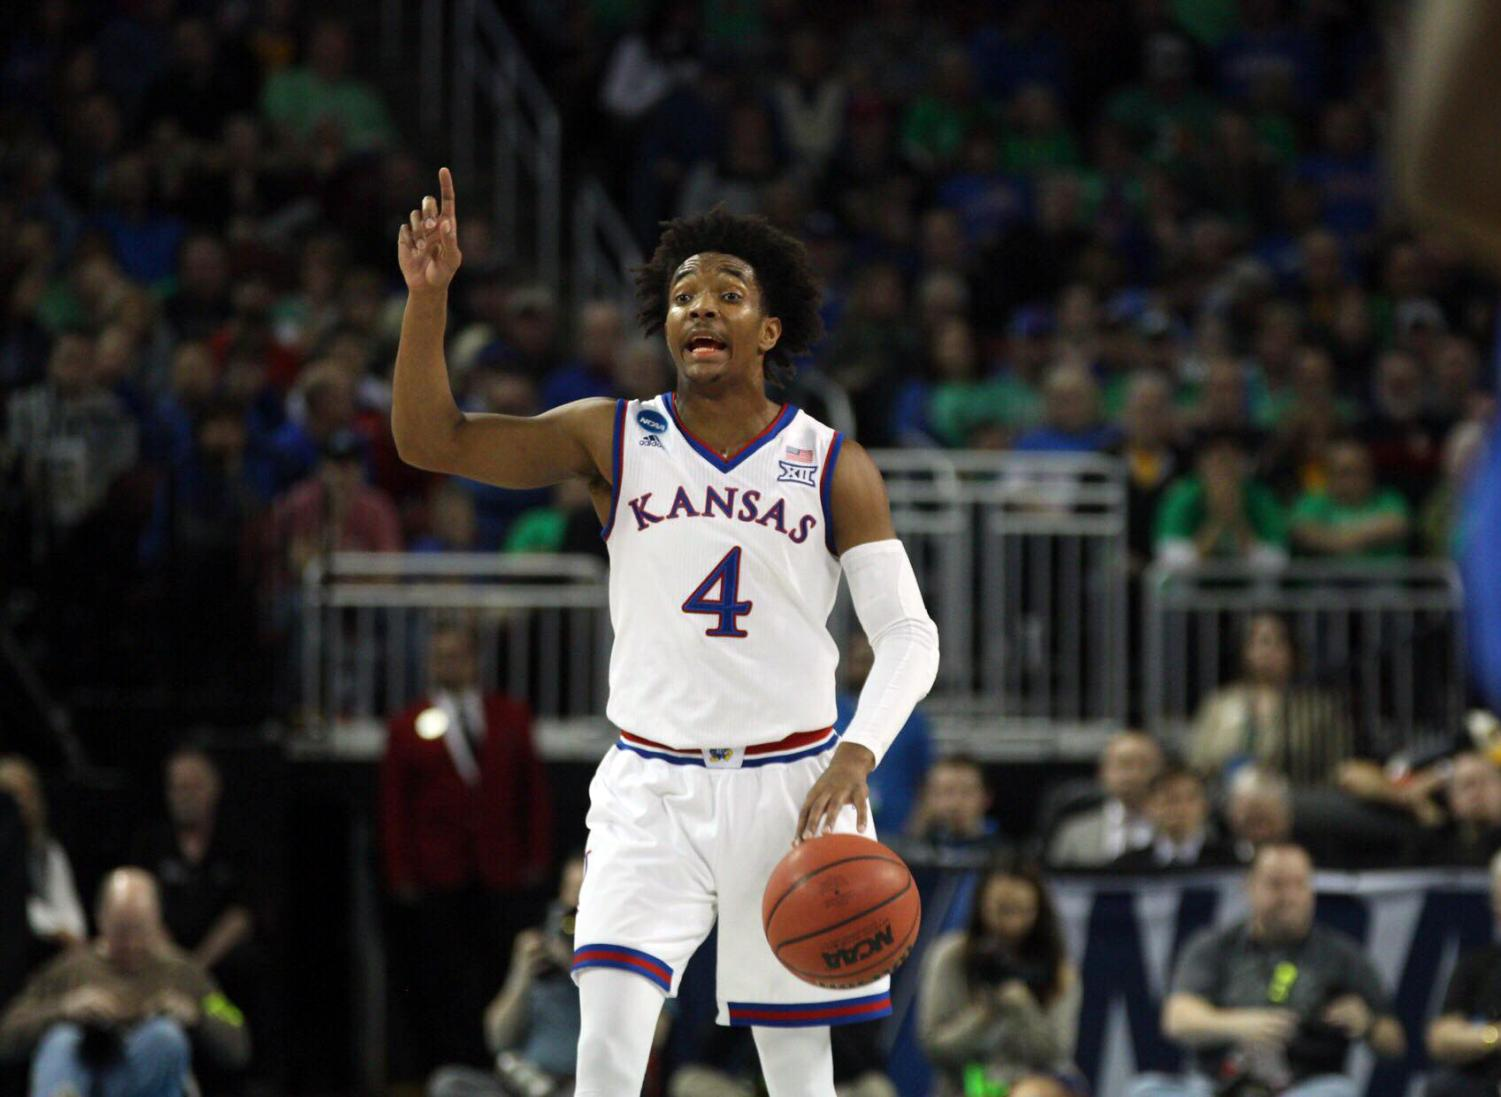 Kansas guard Devonte Graham calls out a play during the first half of the game against Seton Hall in the second round of the NCAA Tournament.